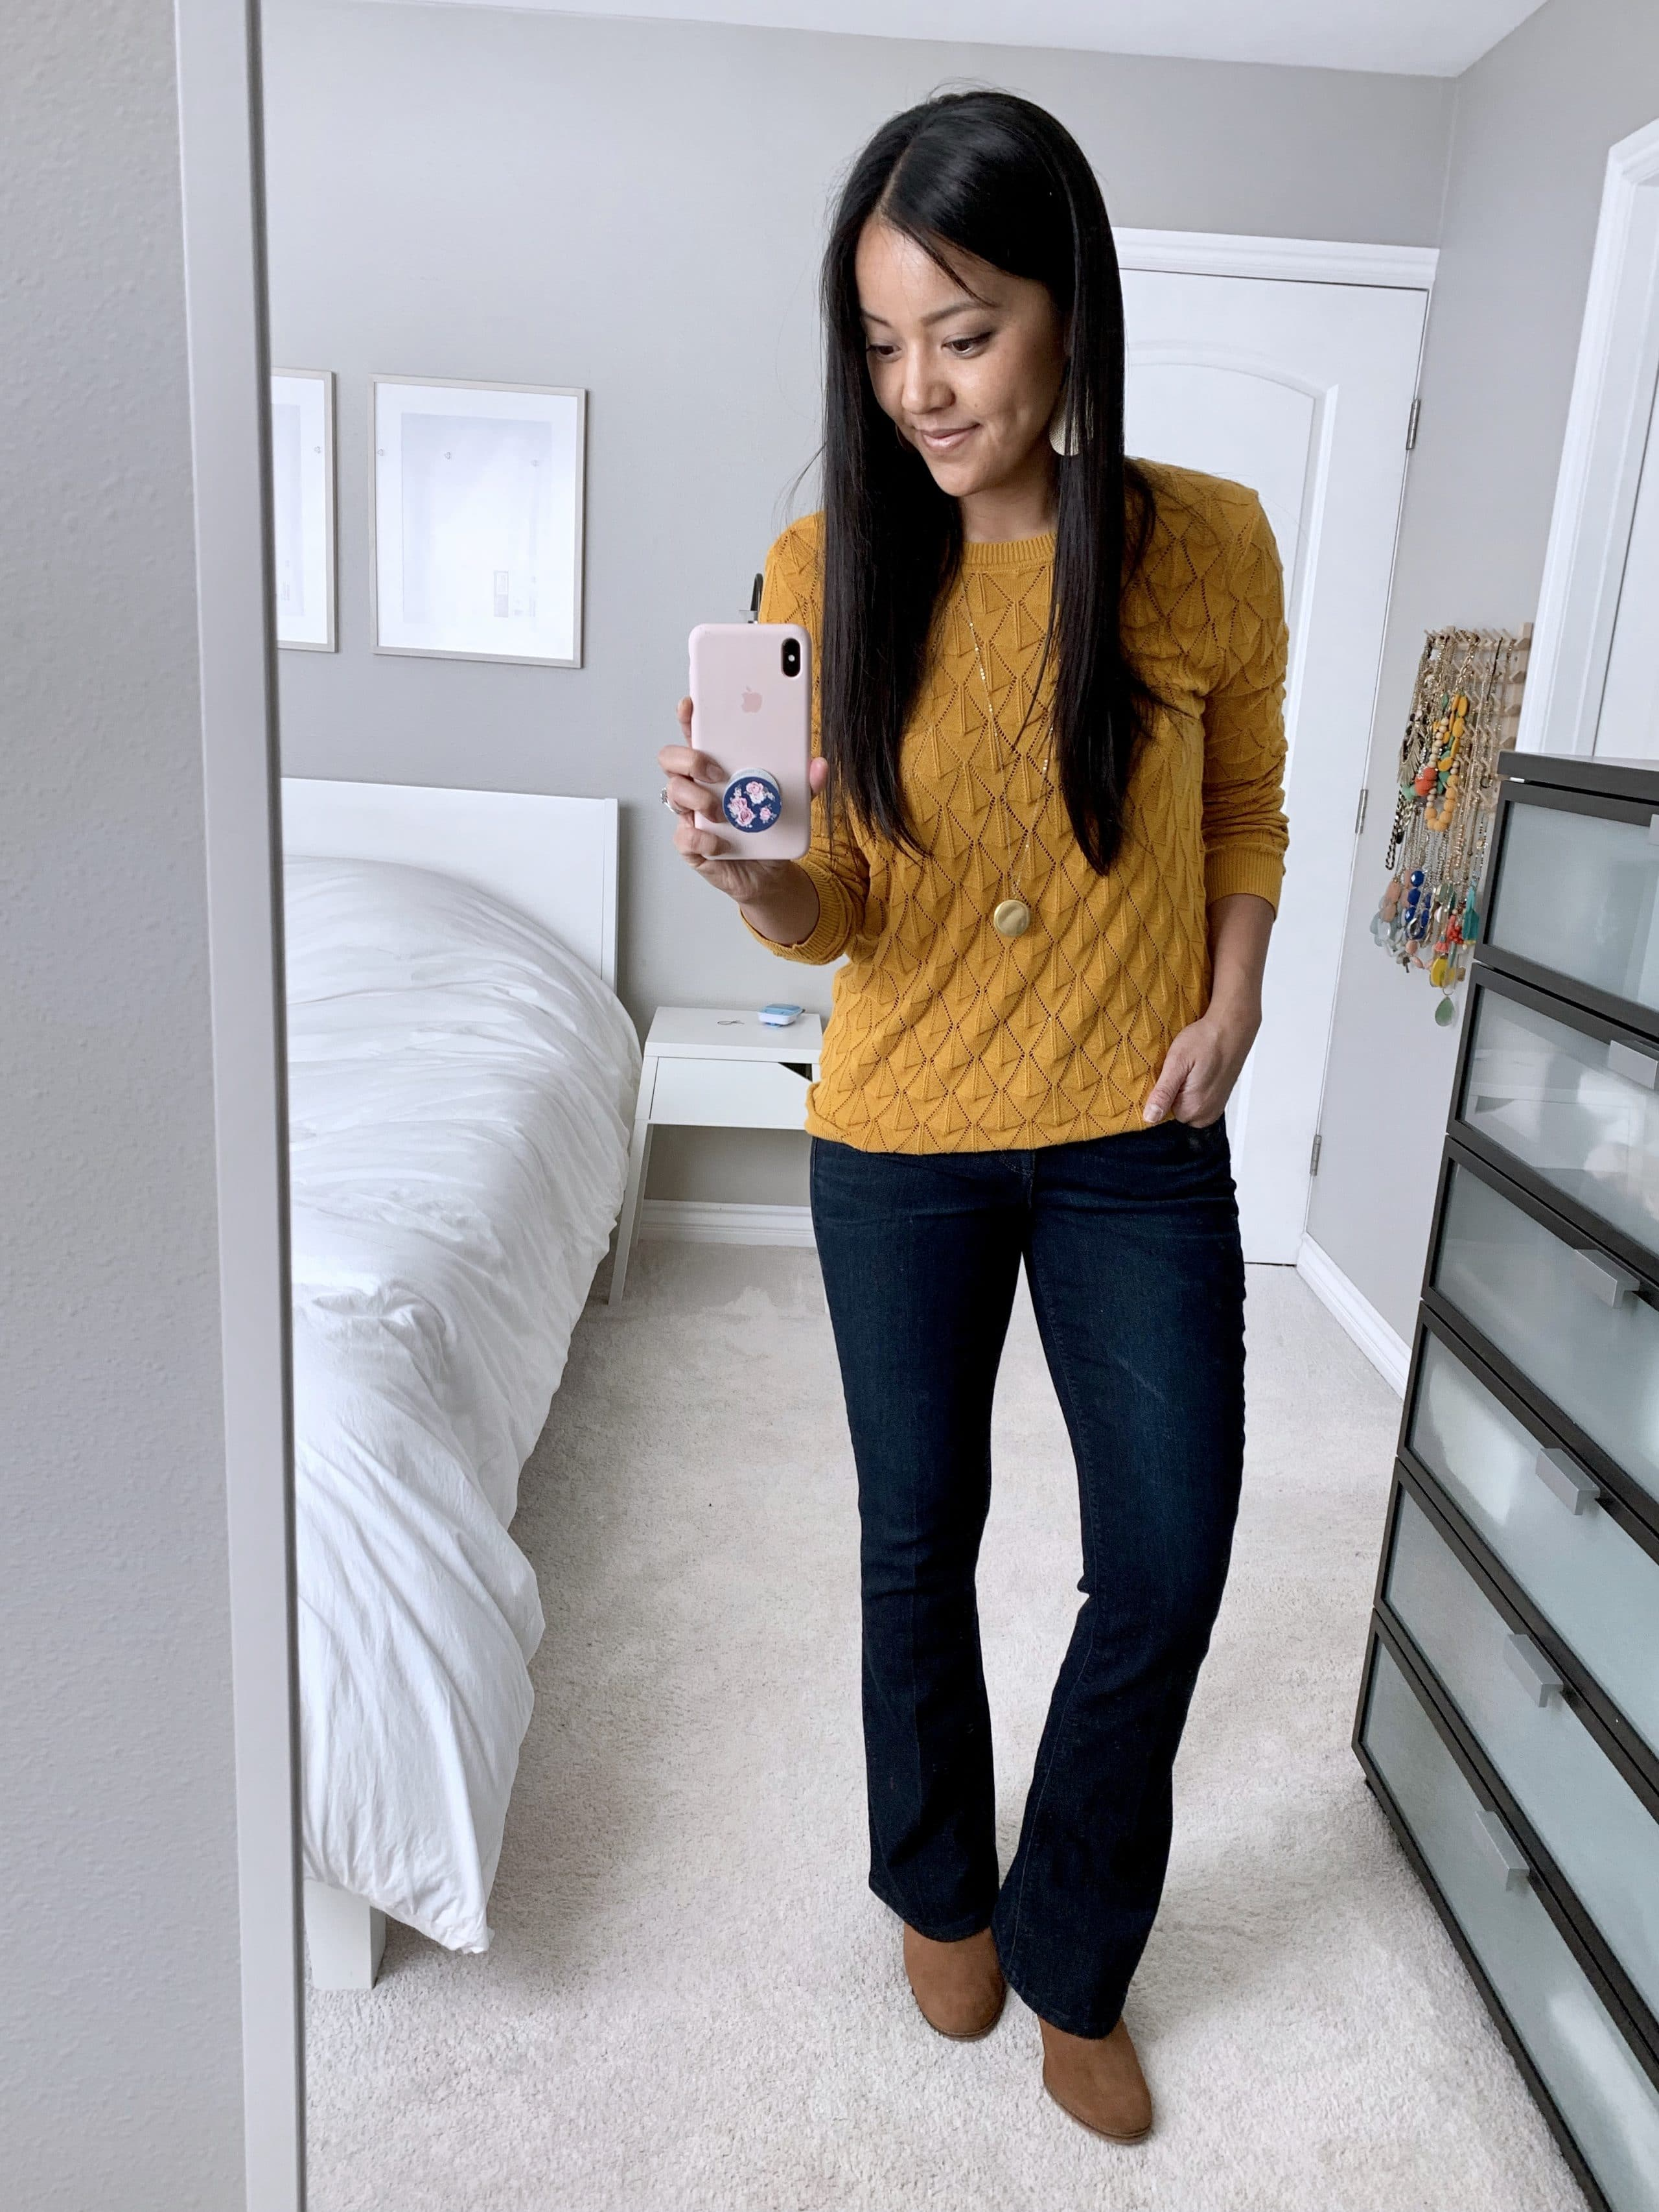 Bootcut Jeans Yellow Sweater Tan Booties